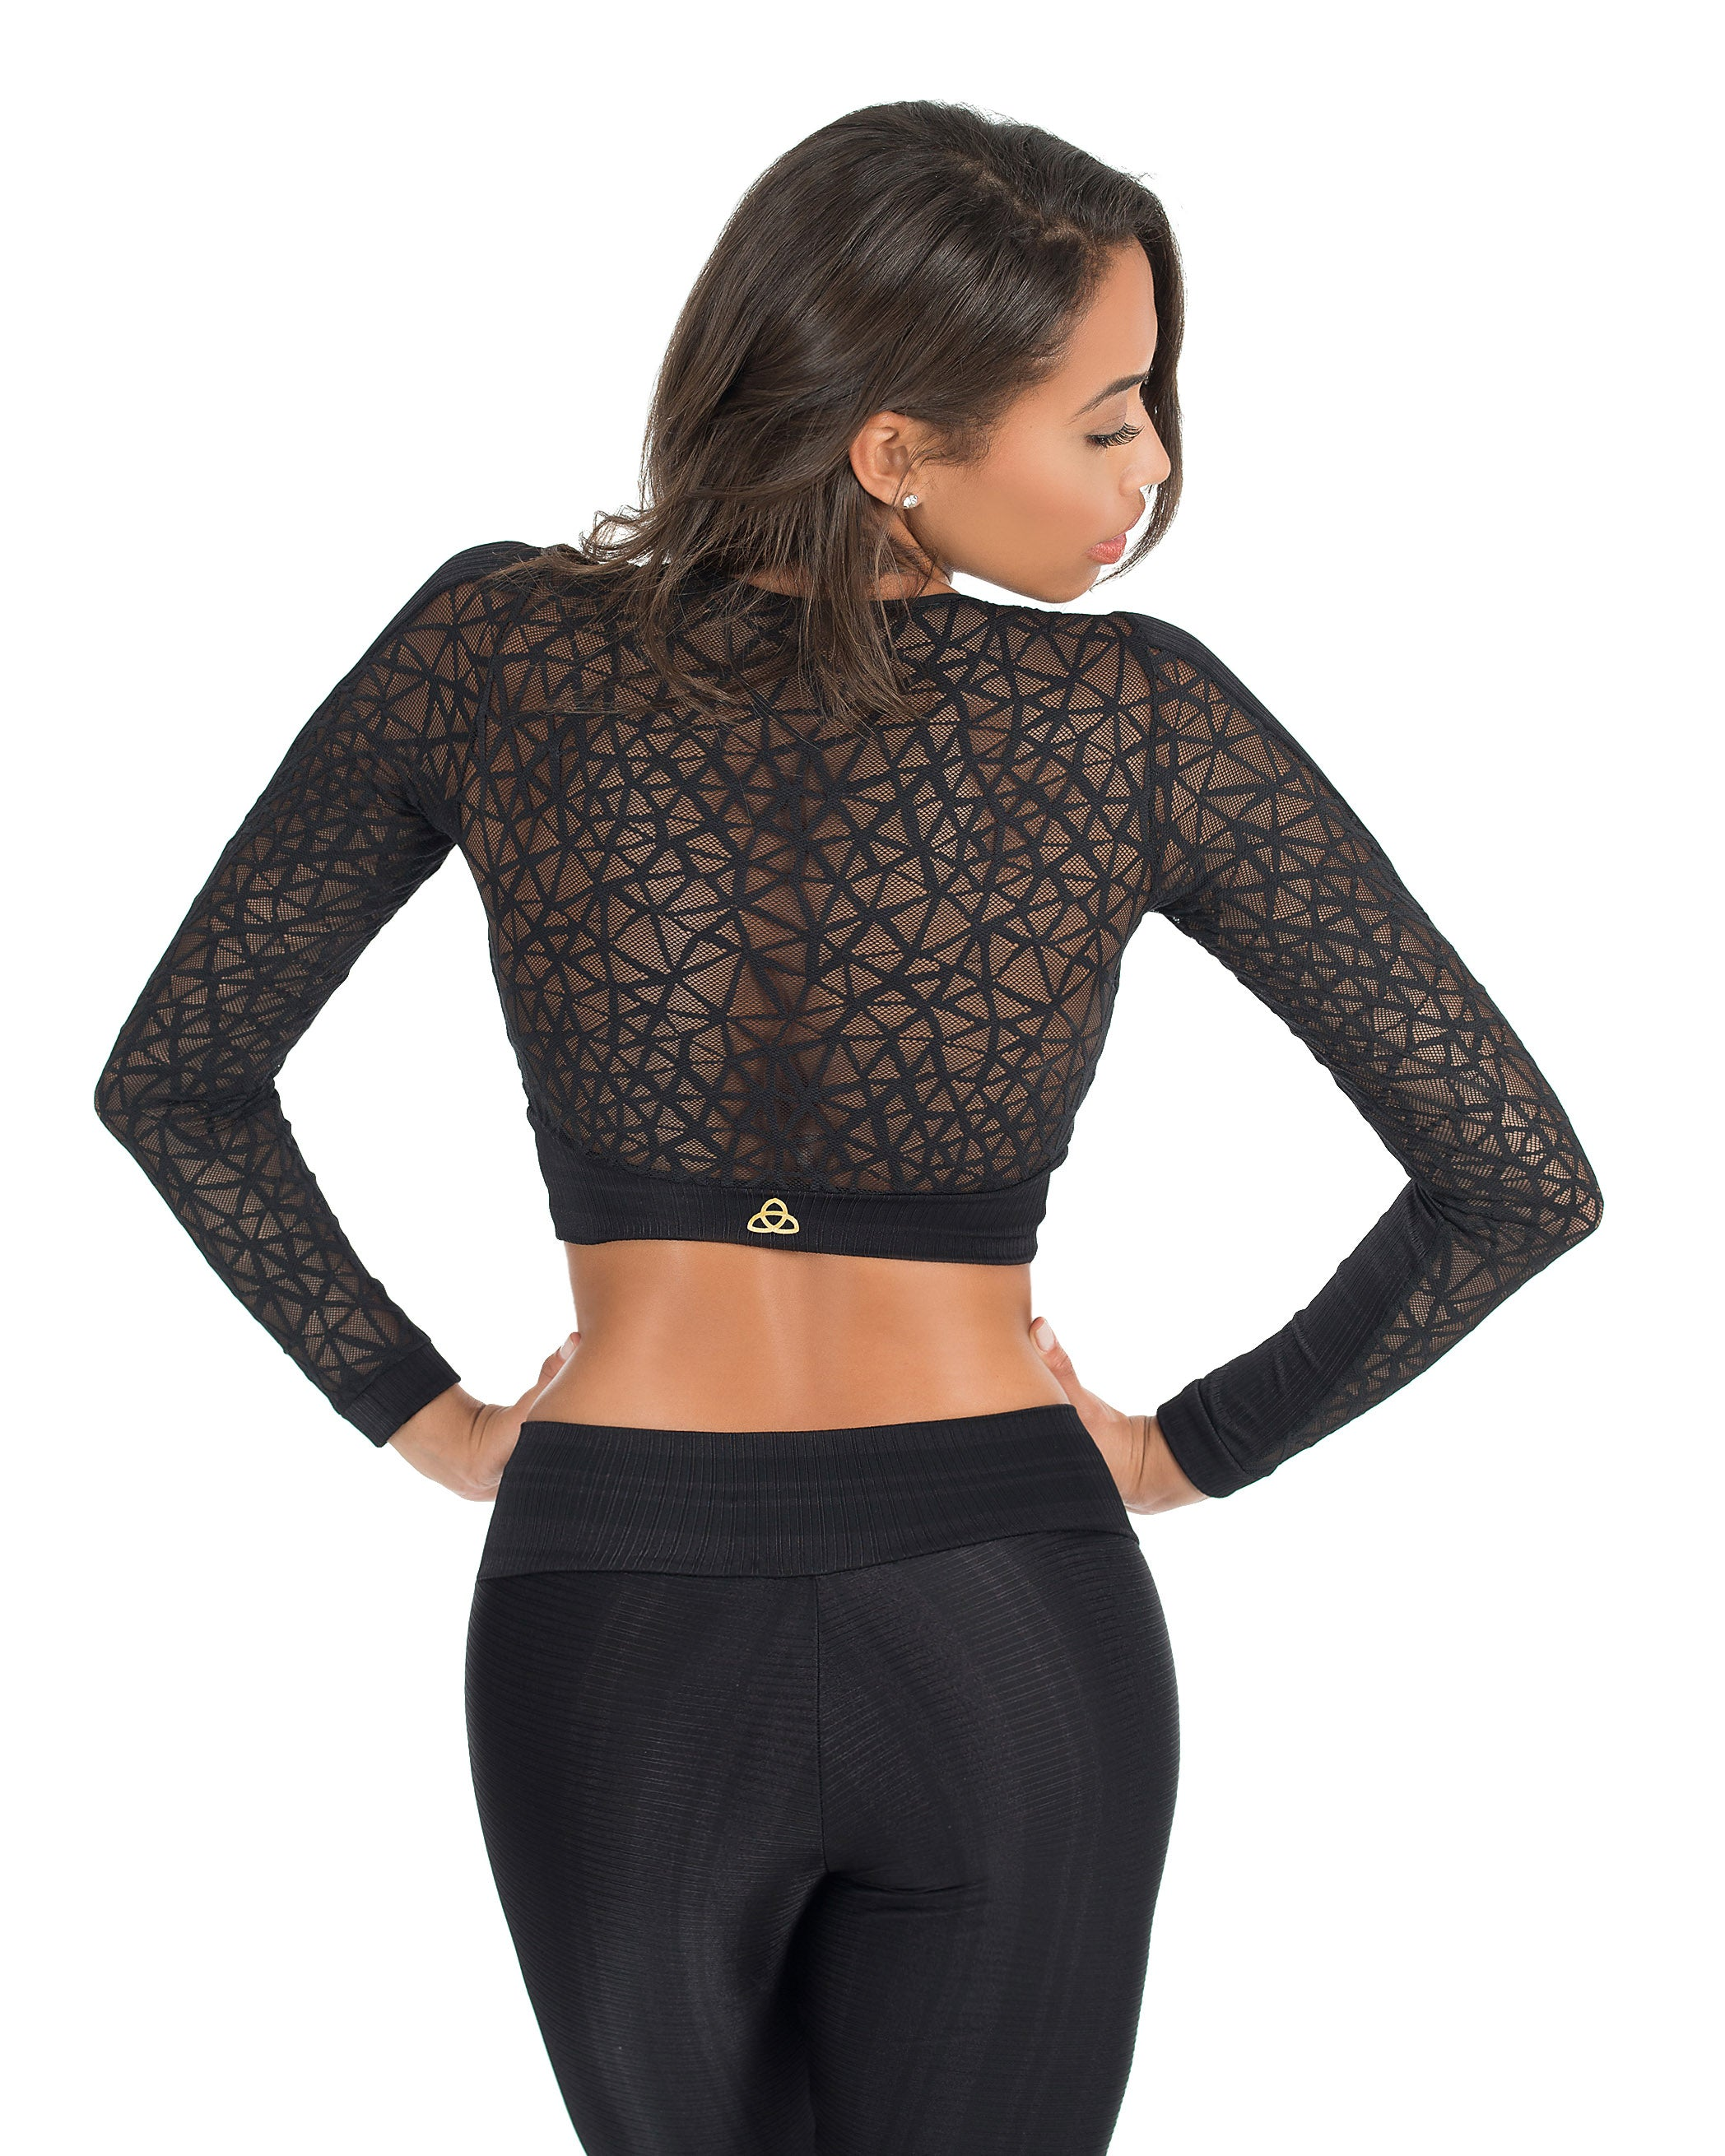 Fatale Cropped Top - AVESSA